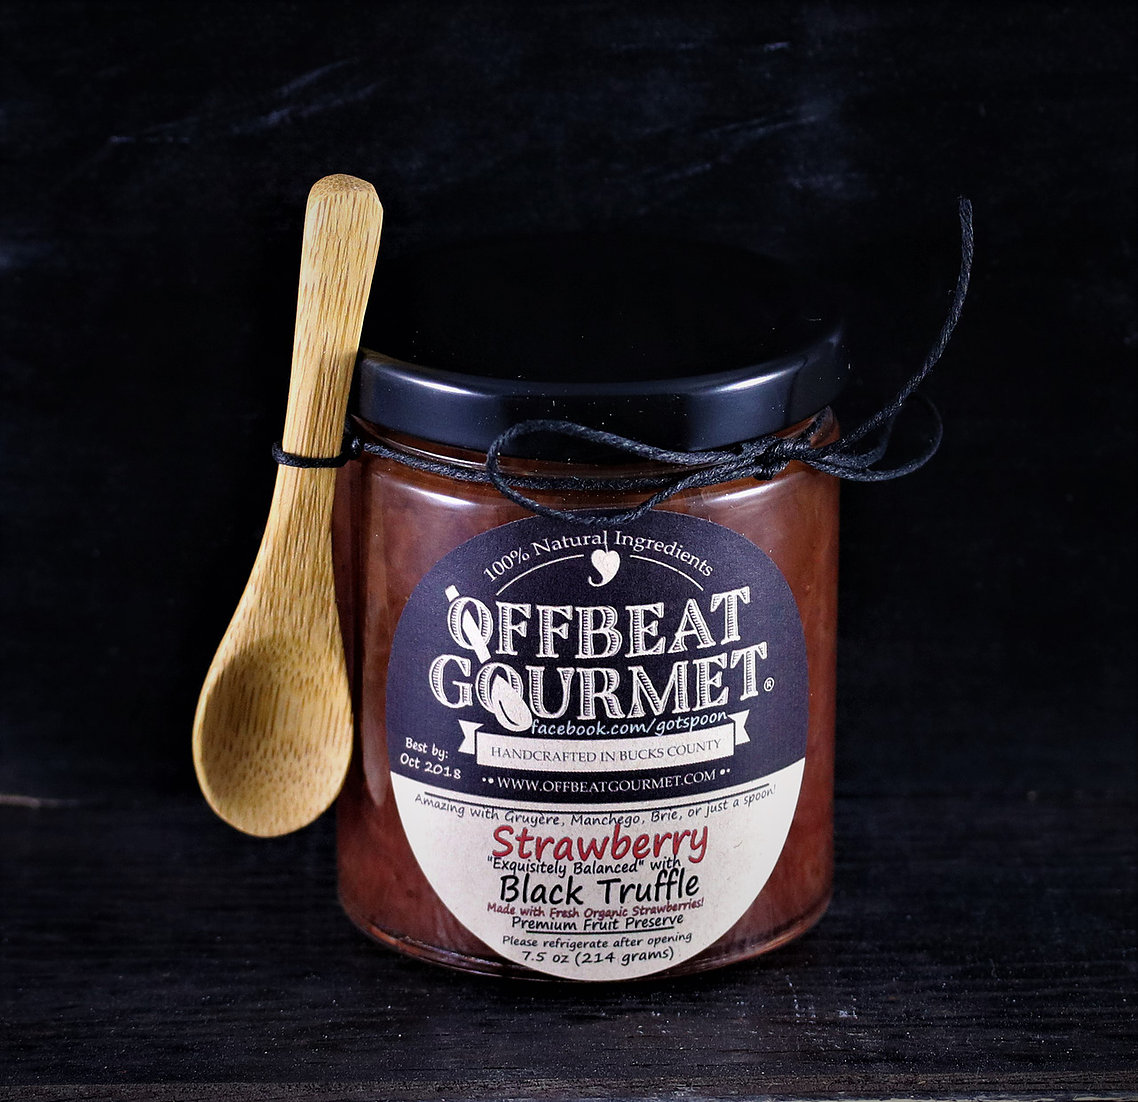 Offbeat Gourmet Strawberry Black Truffle Jam available locally and online.